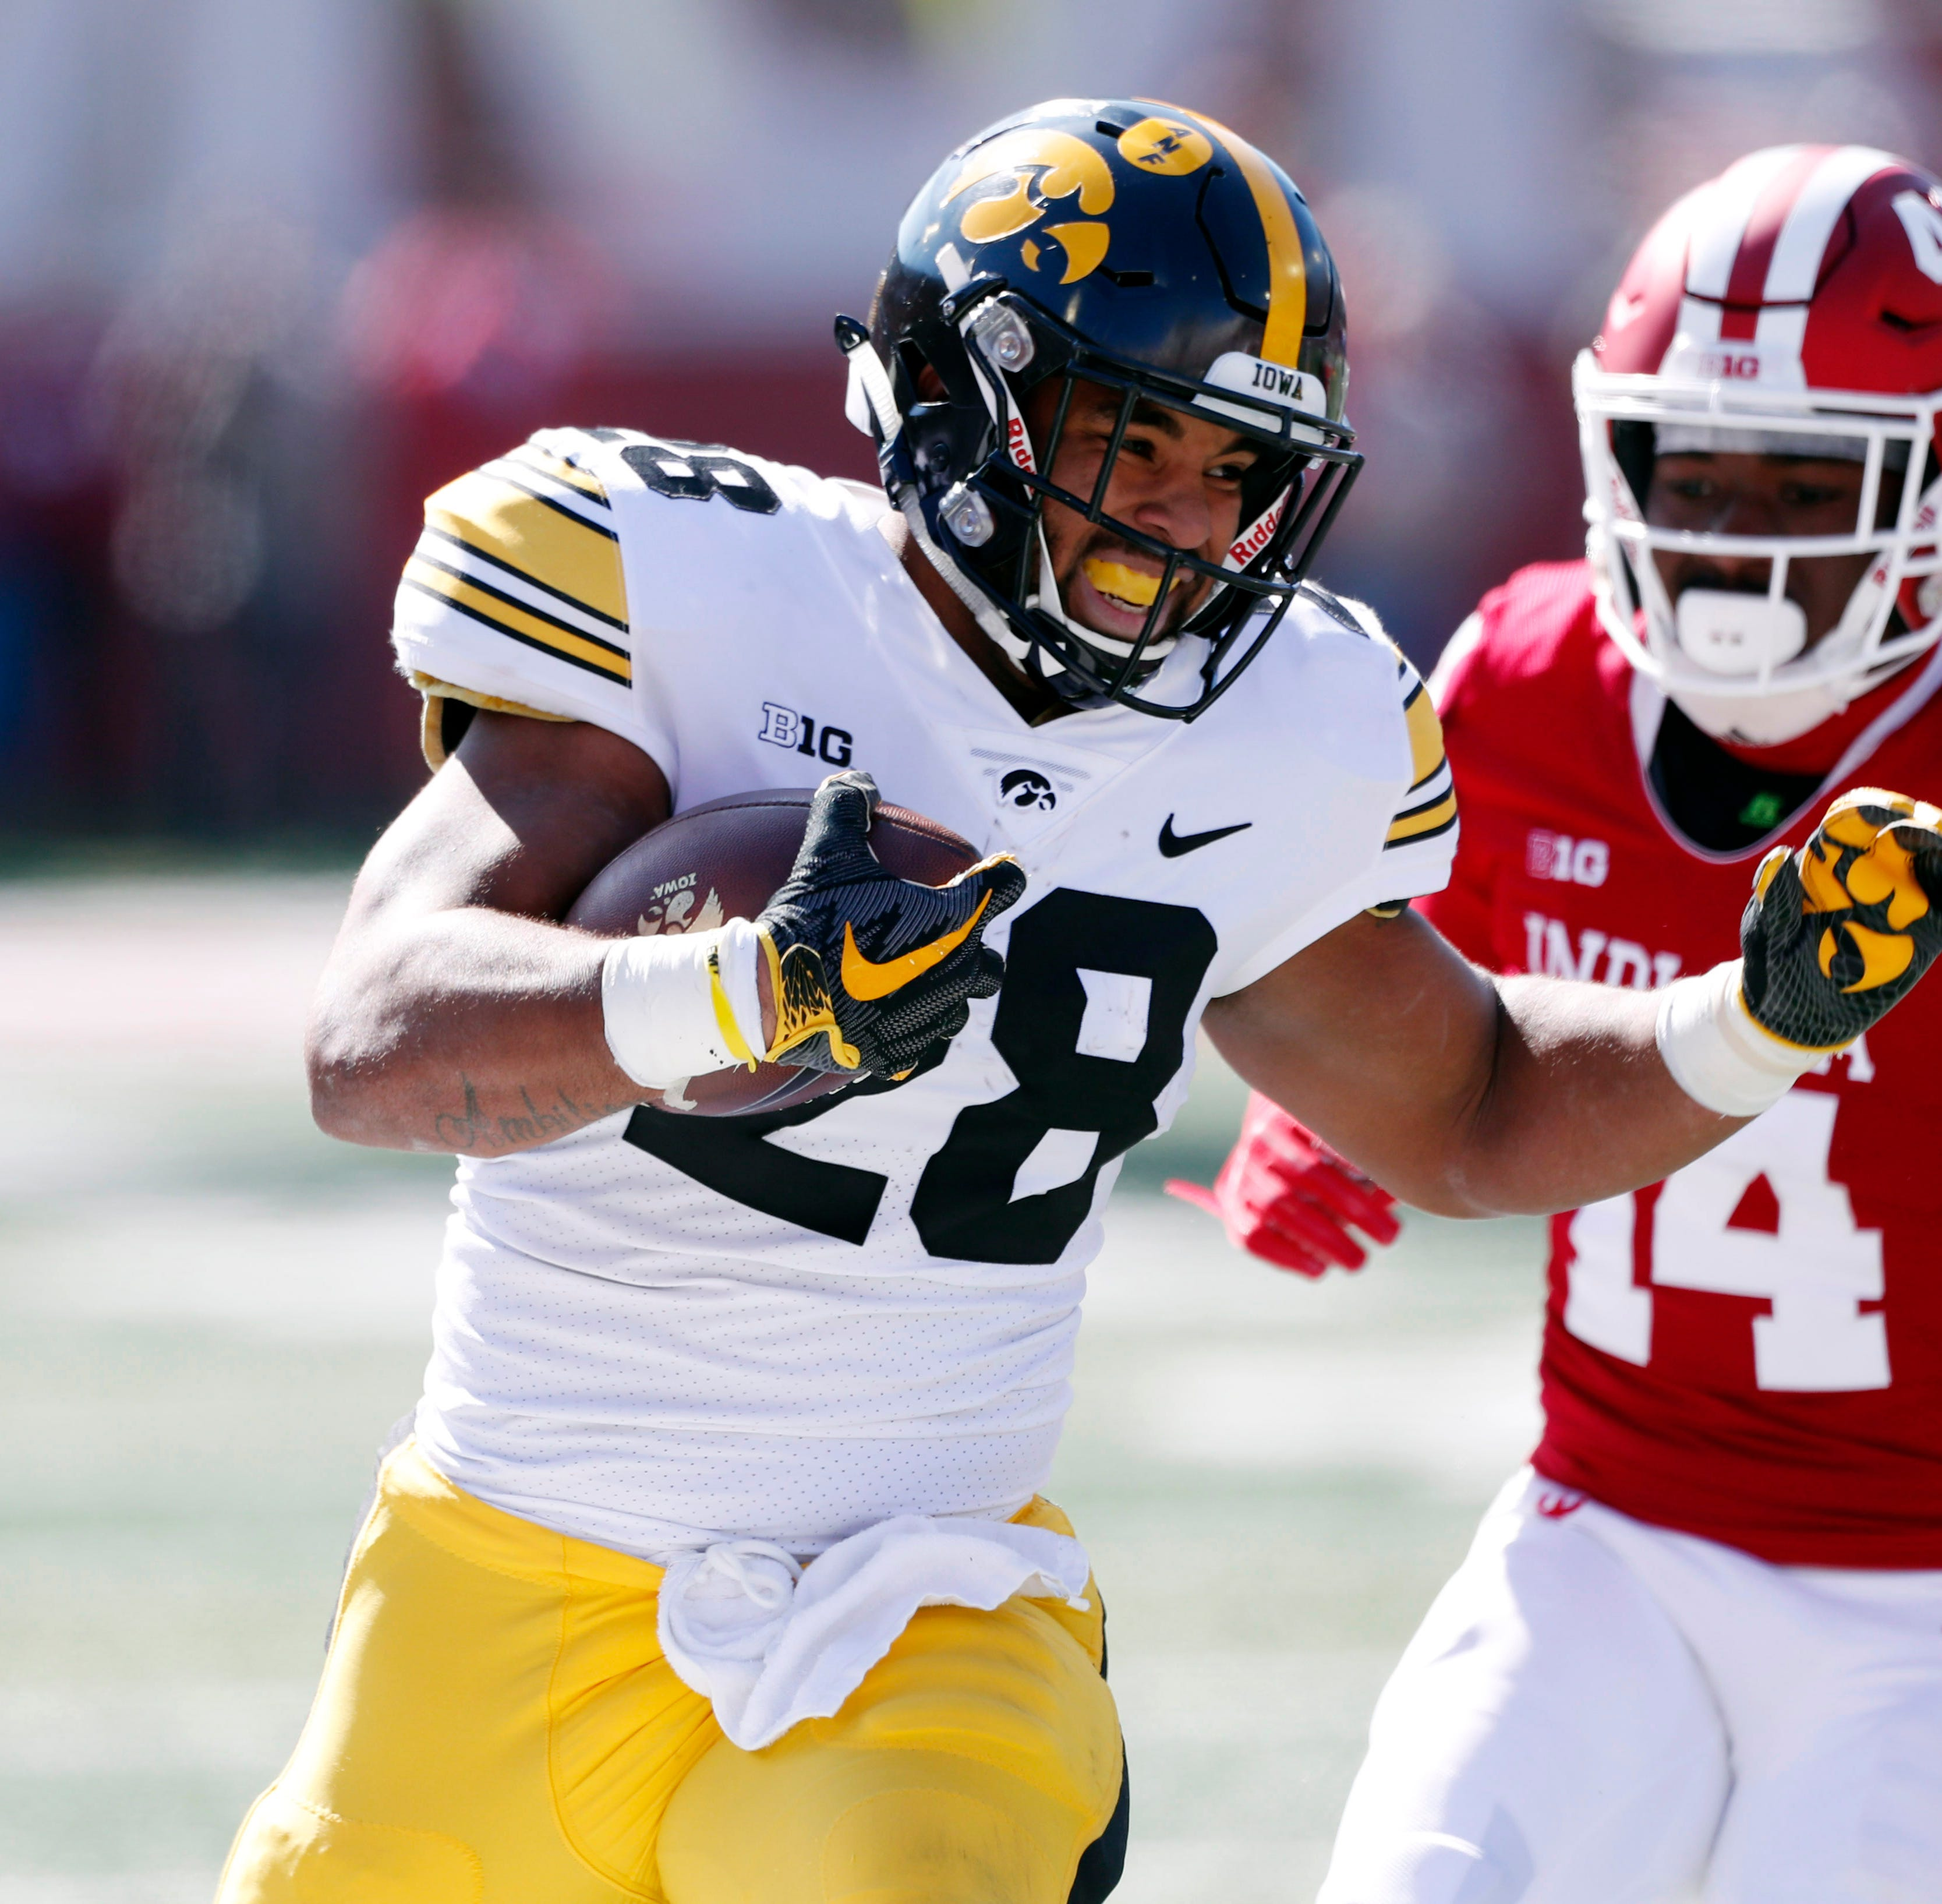 Hawkeyes running back Toren Young (28) runs with the ball against Indiana Hoosiers defensive back Andre Brown Jr. (14) during the first quarter at Memorial Stadium .